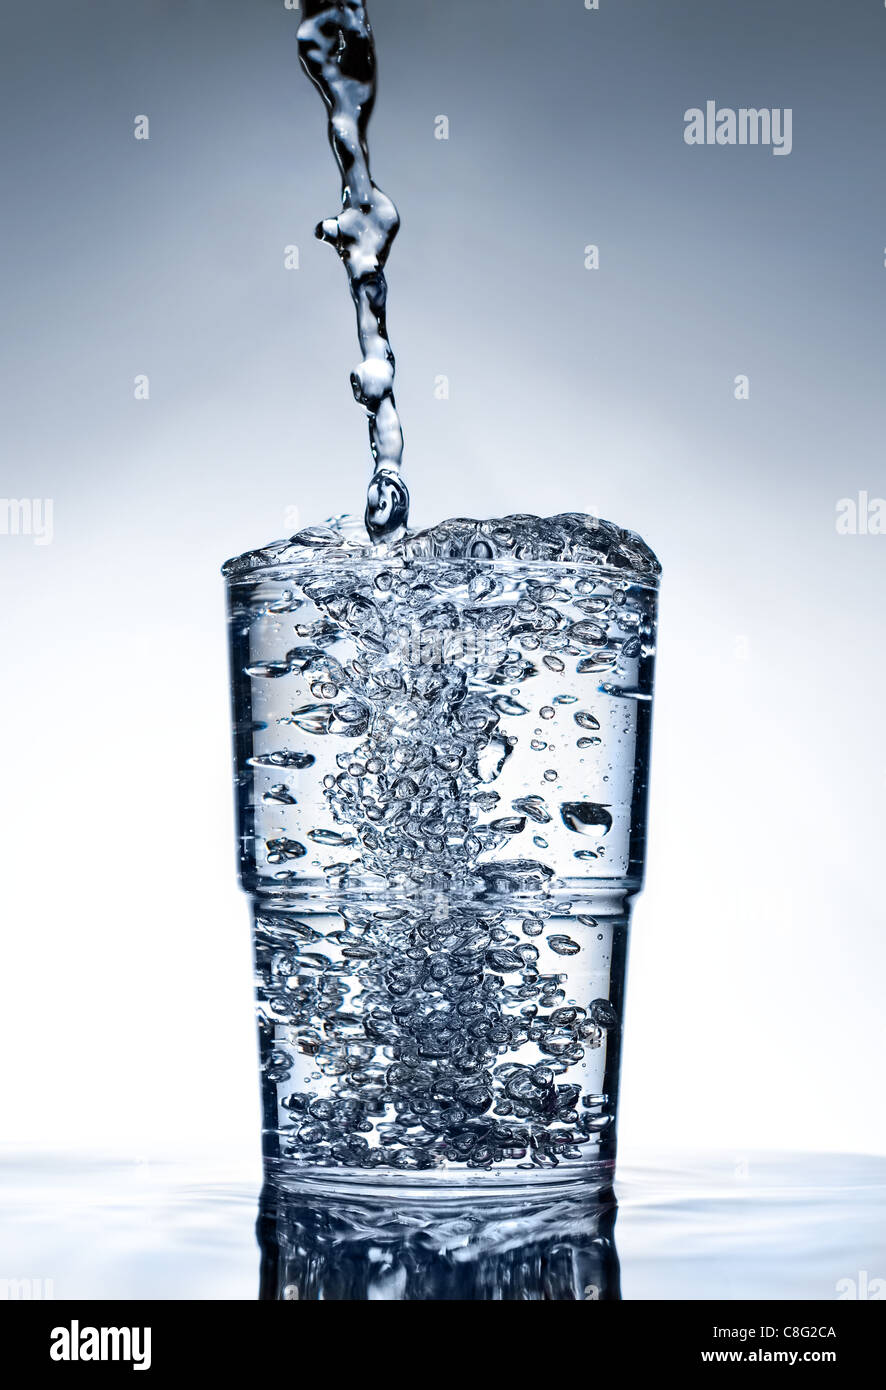 Water and all things related to it. - Stock Image